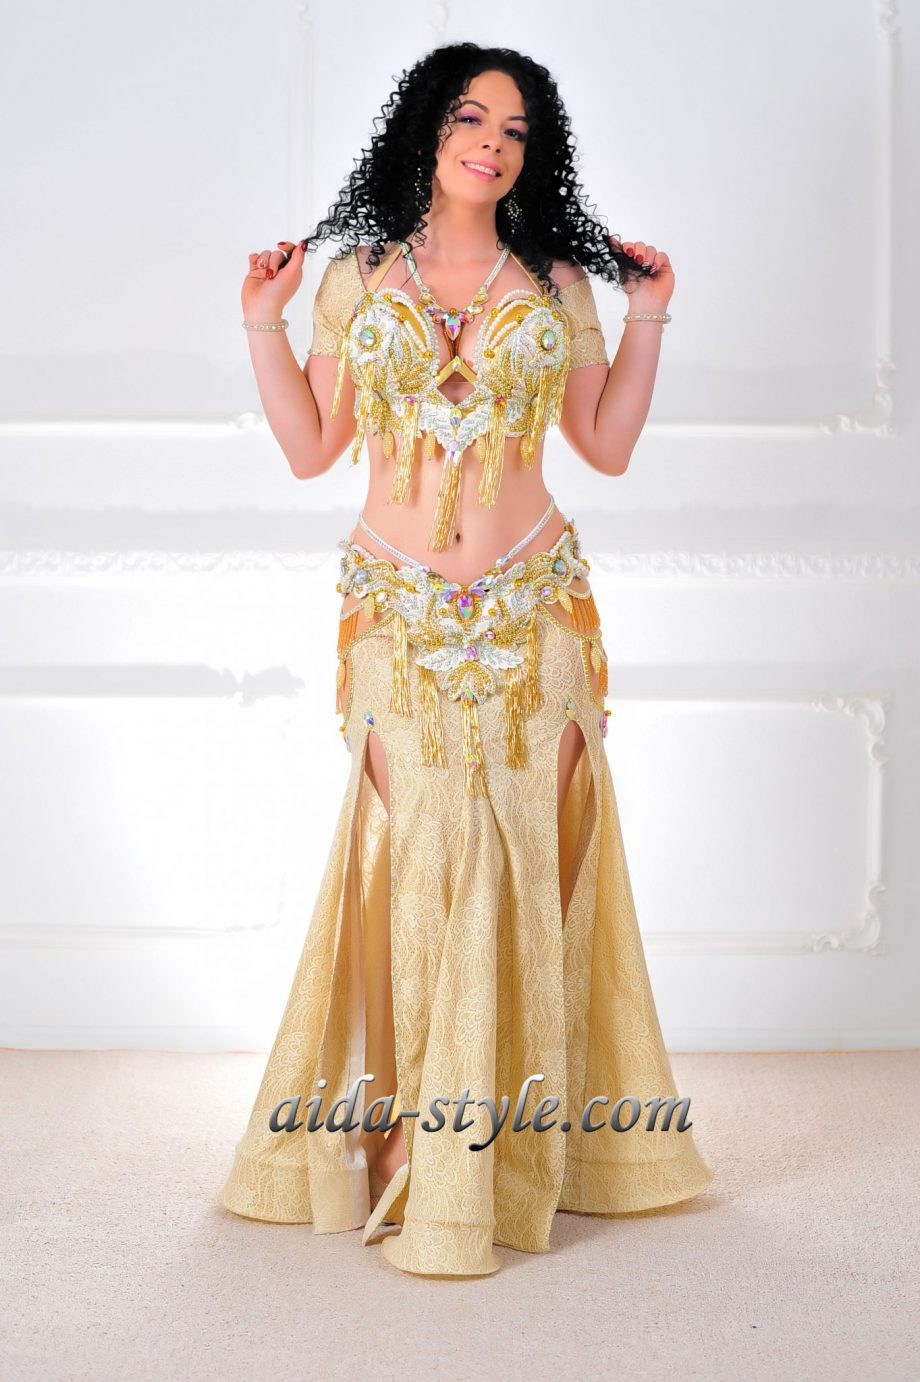 costume for belly dance gold